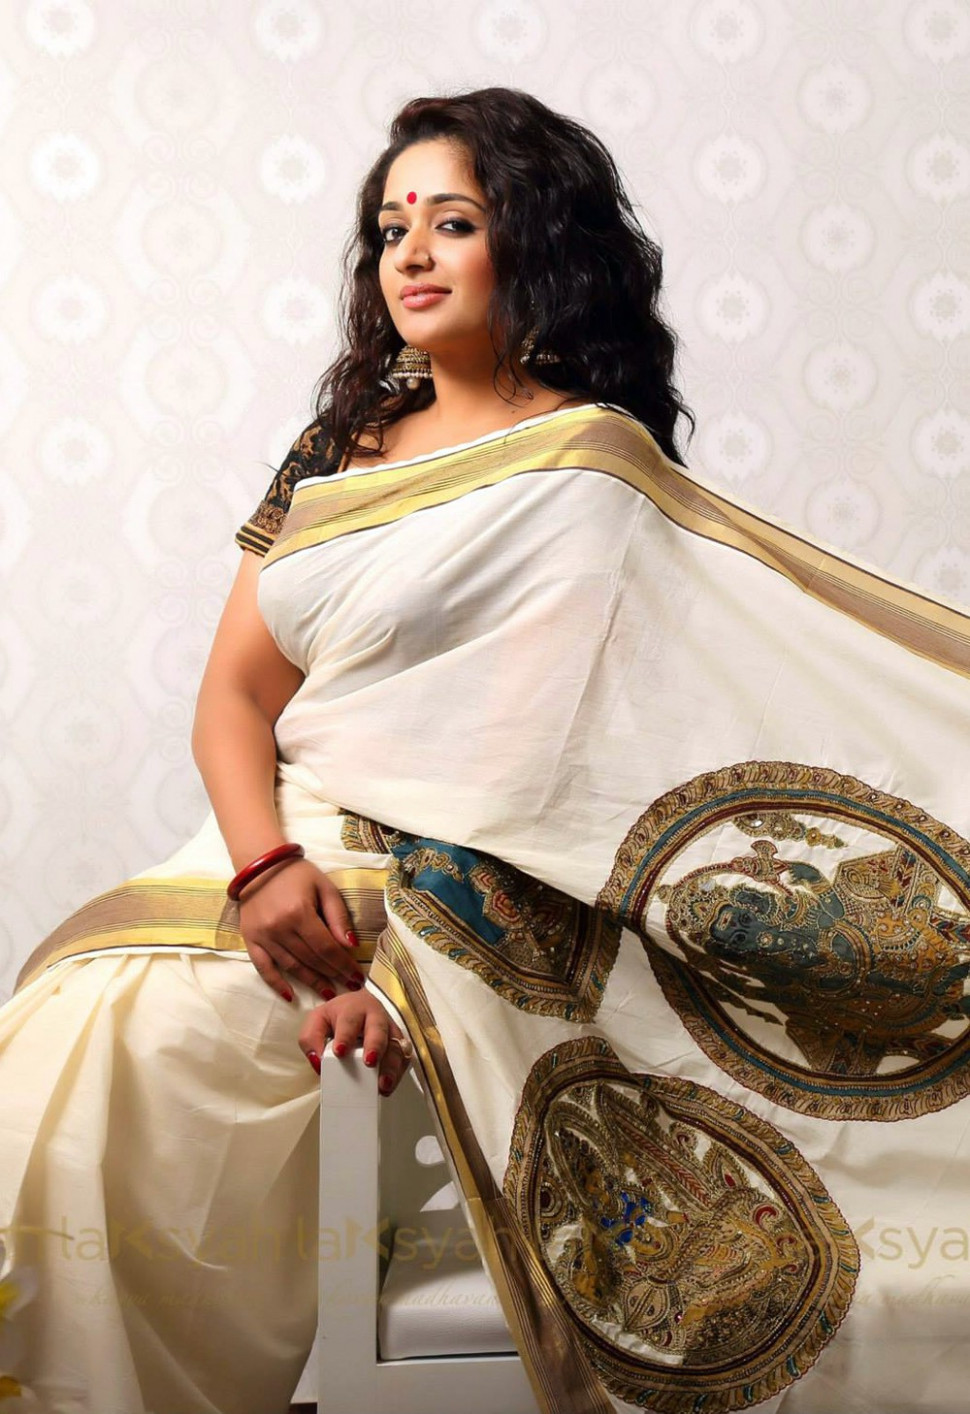 Kavya Madhavan in Kerala Set Saree Stills  Cine South